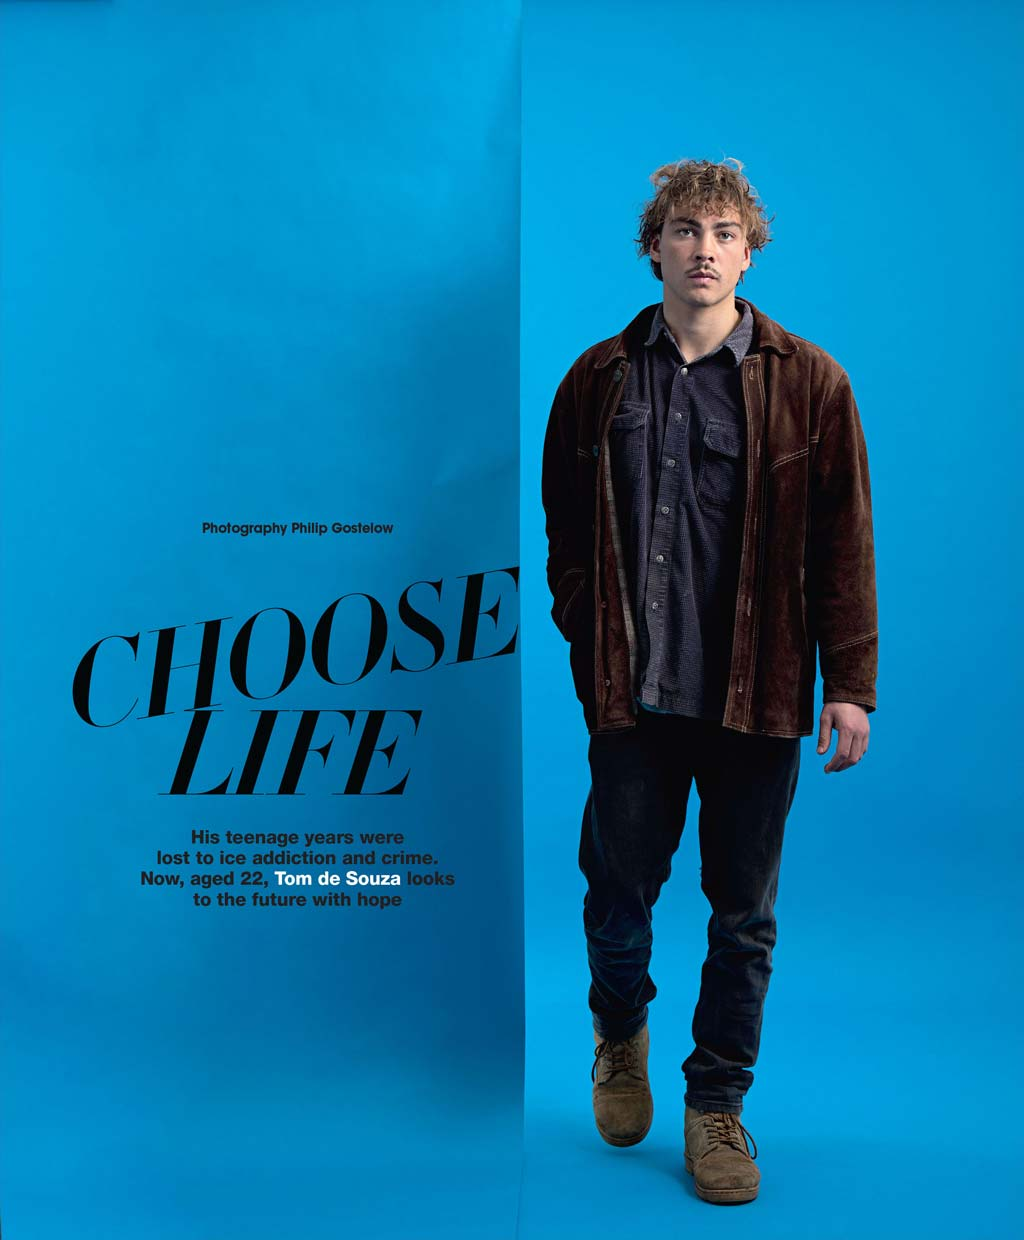 Tom-de-Souza-Choose-Life